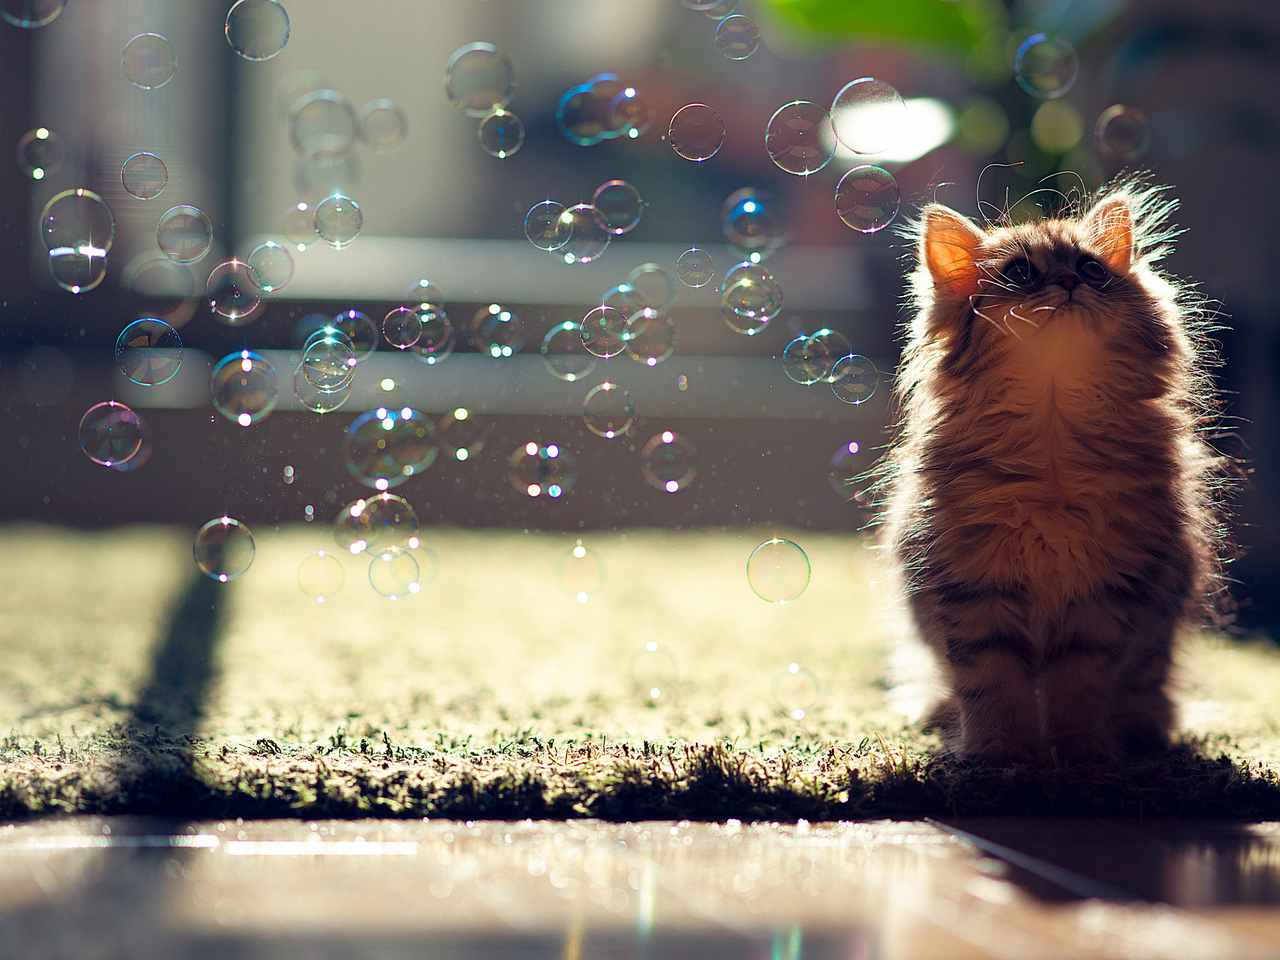 14712 download wallpaper Animals, Cats, Bubbles screensavers and pictures for free